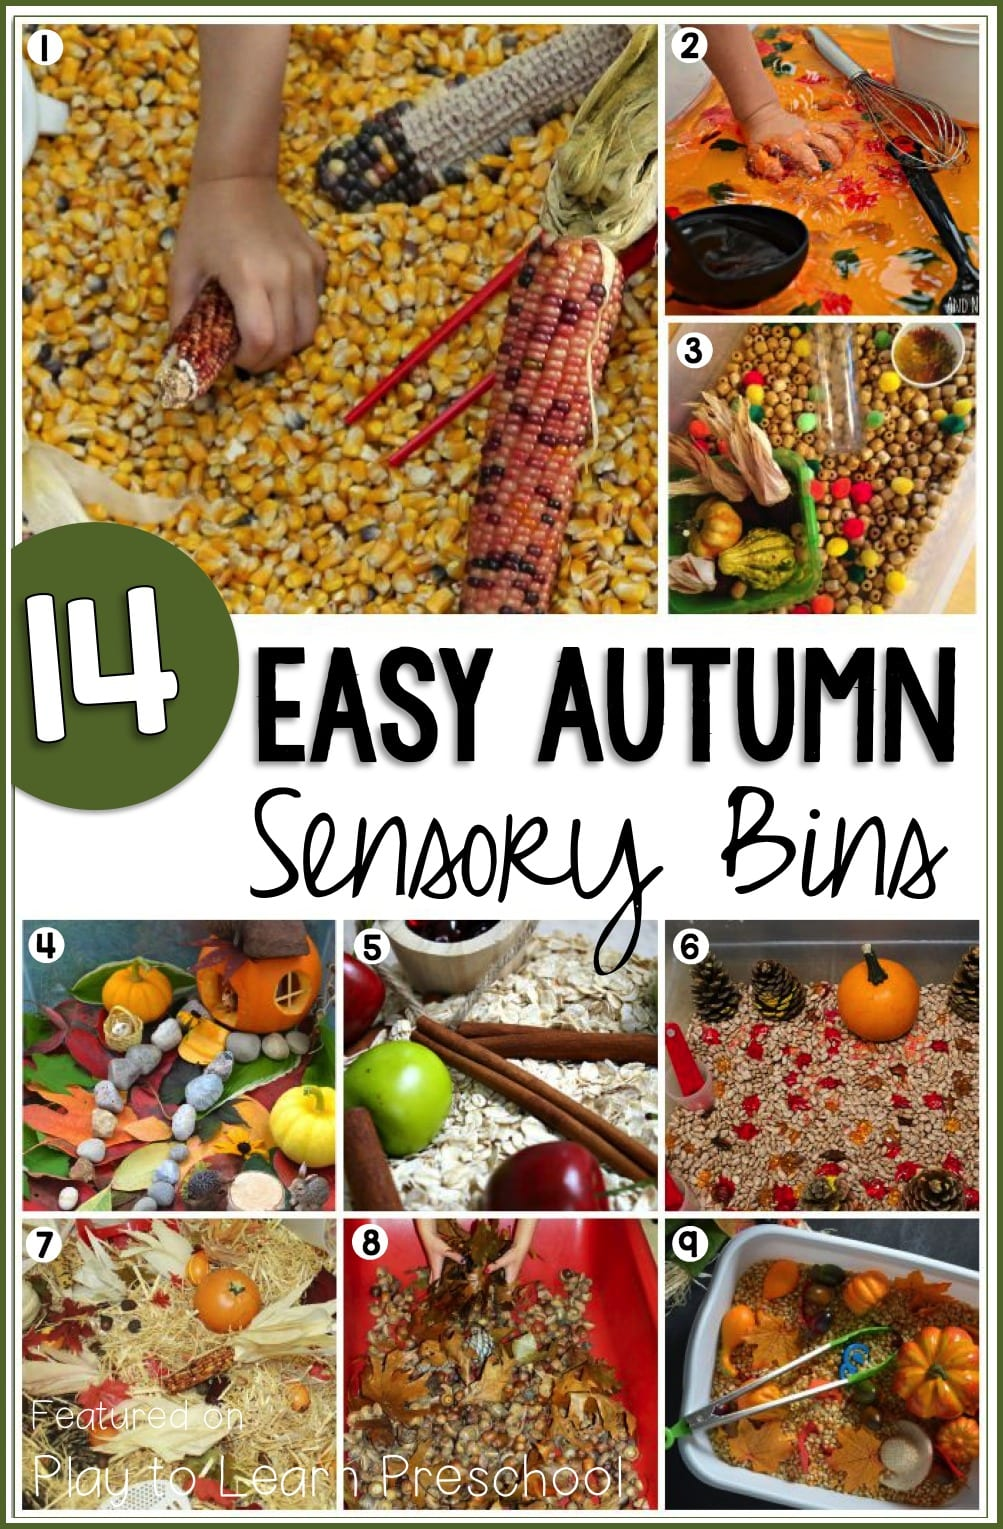 Autumn Sensory Bins